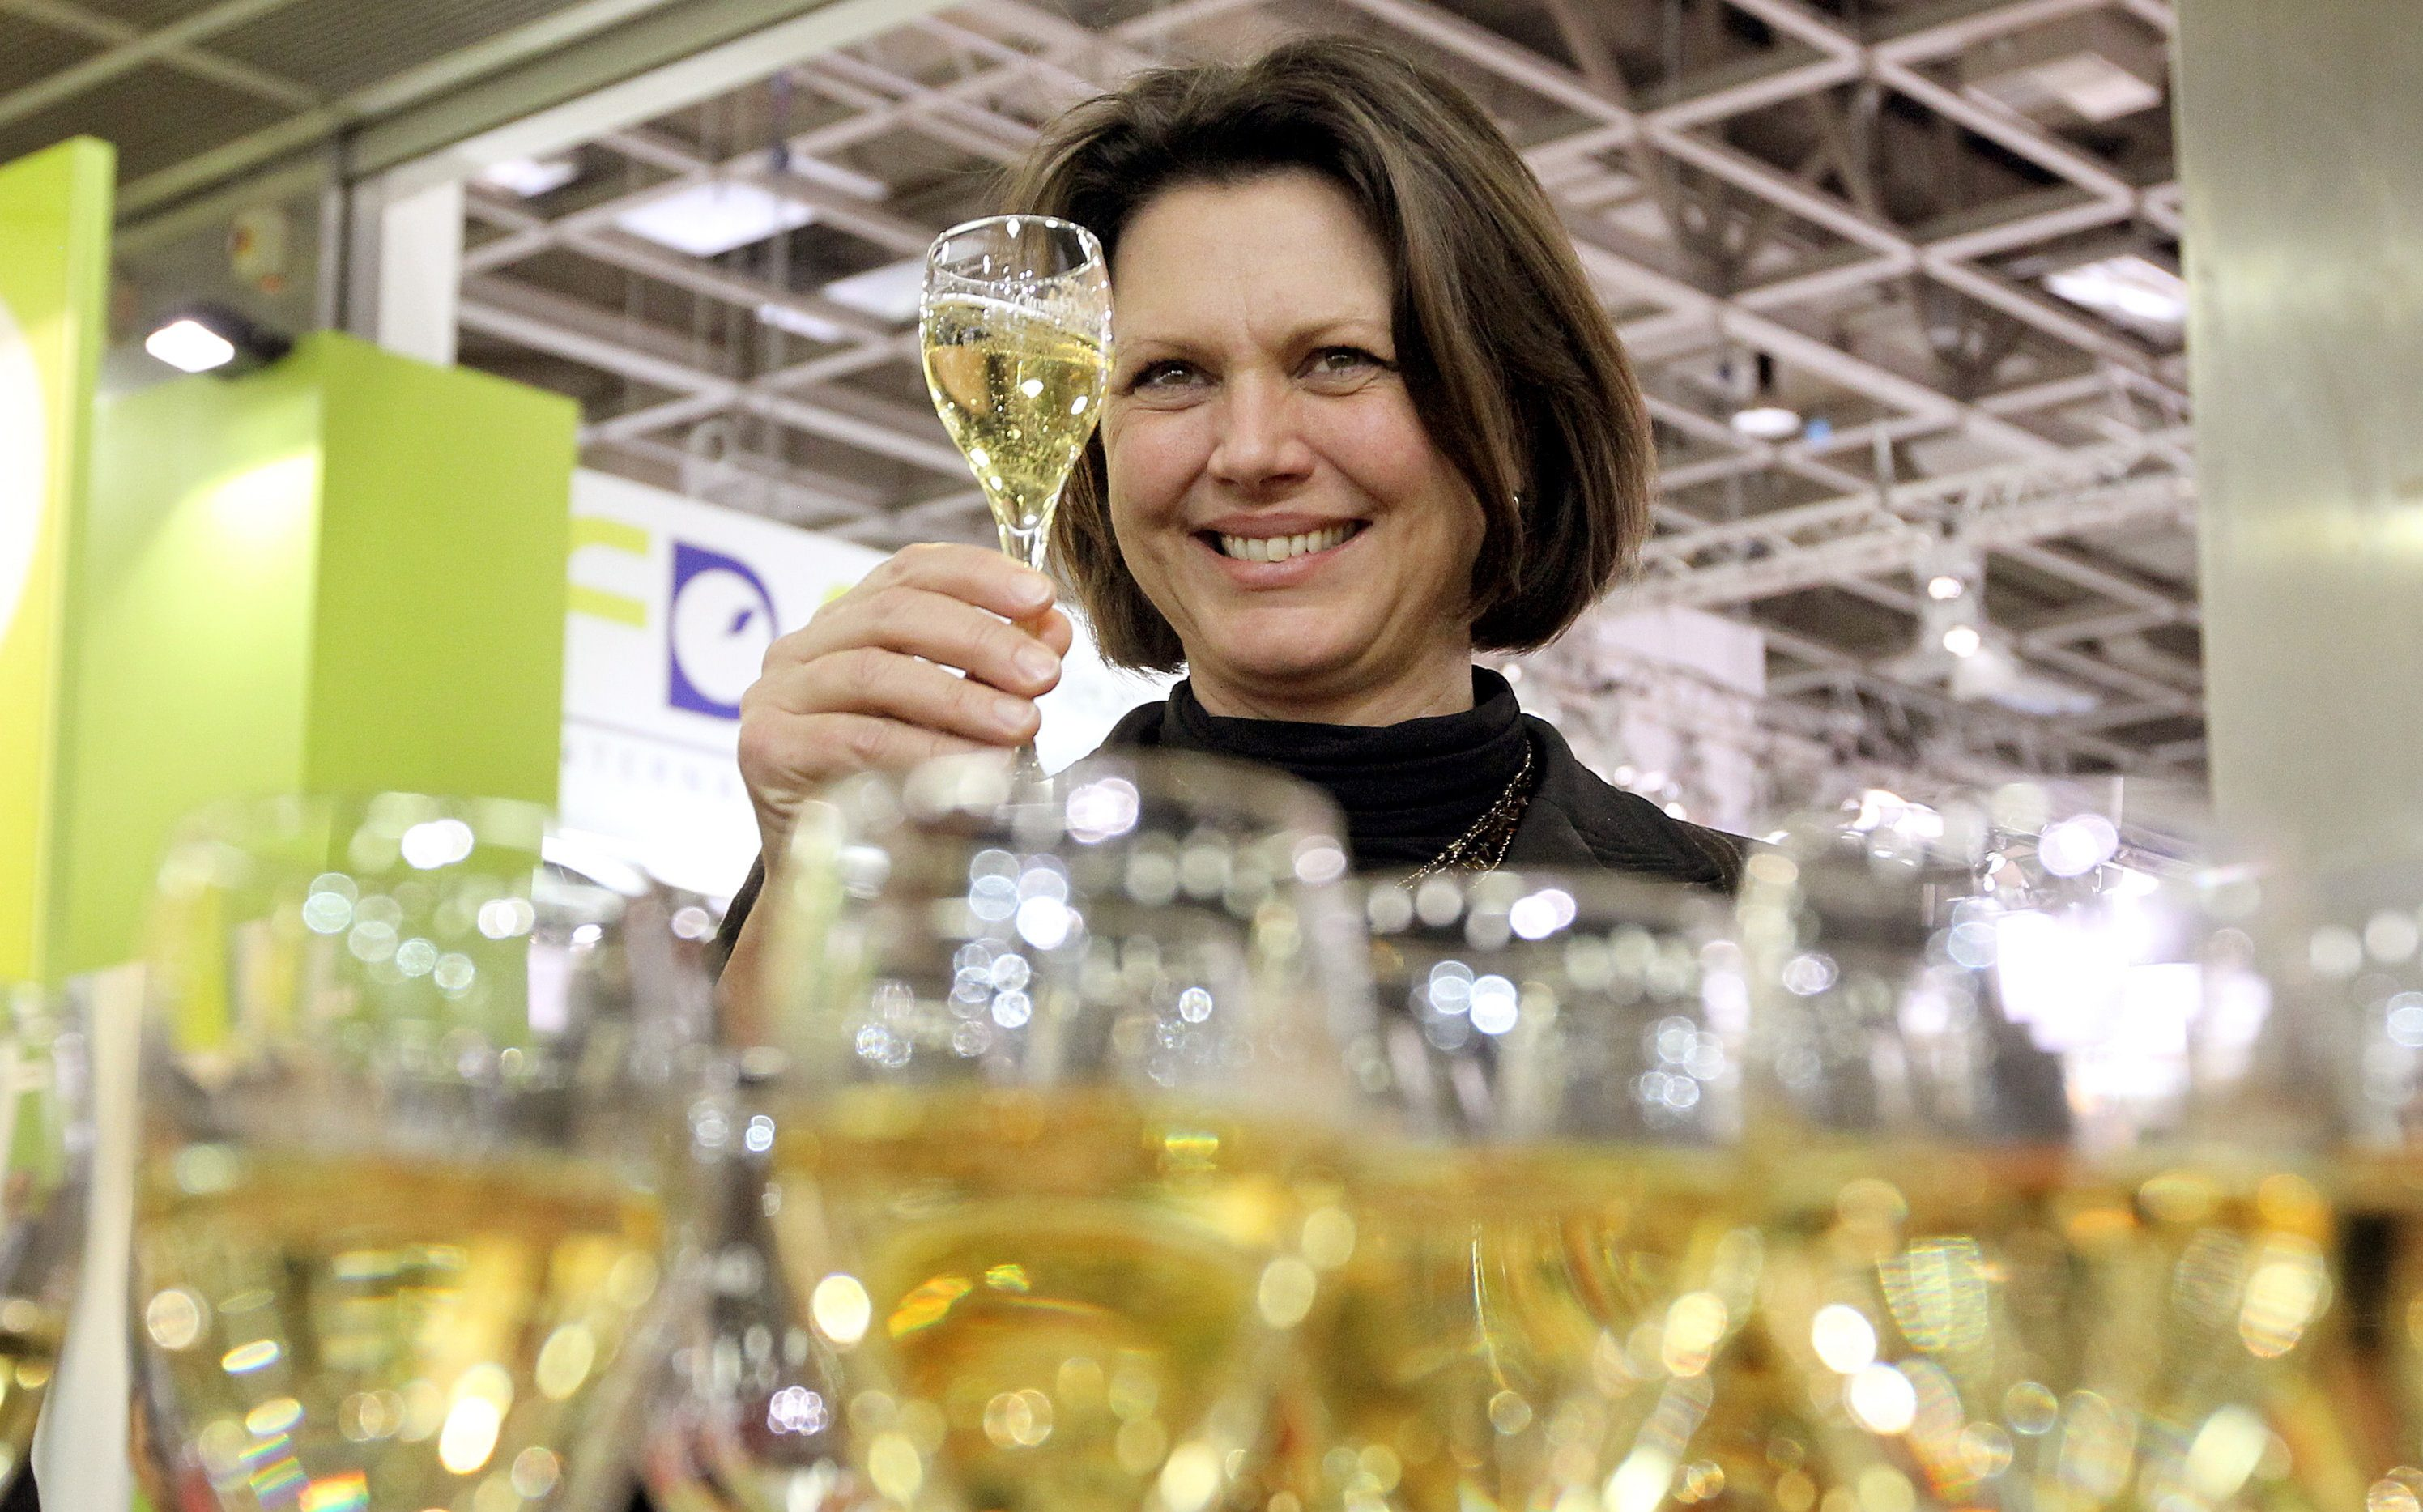 German Minister of Agriculture Ilse Aigner tries champagne at Fruit Logistica in Berlin,Germany, 08 February 2012. The world's largest trade fair about fruit and vegetables opens to the public from 08 until 10 February 2012.